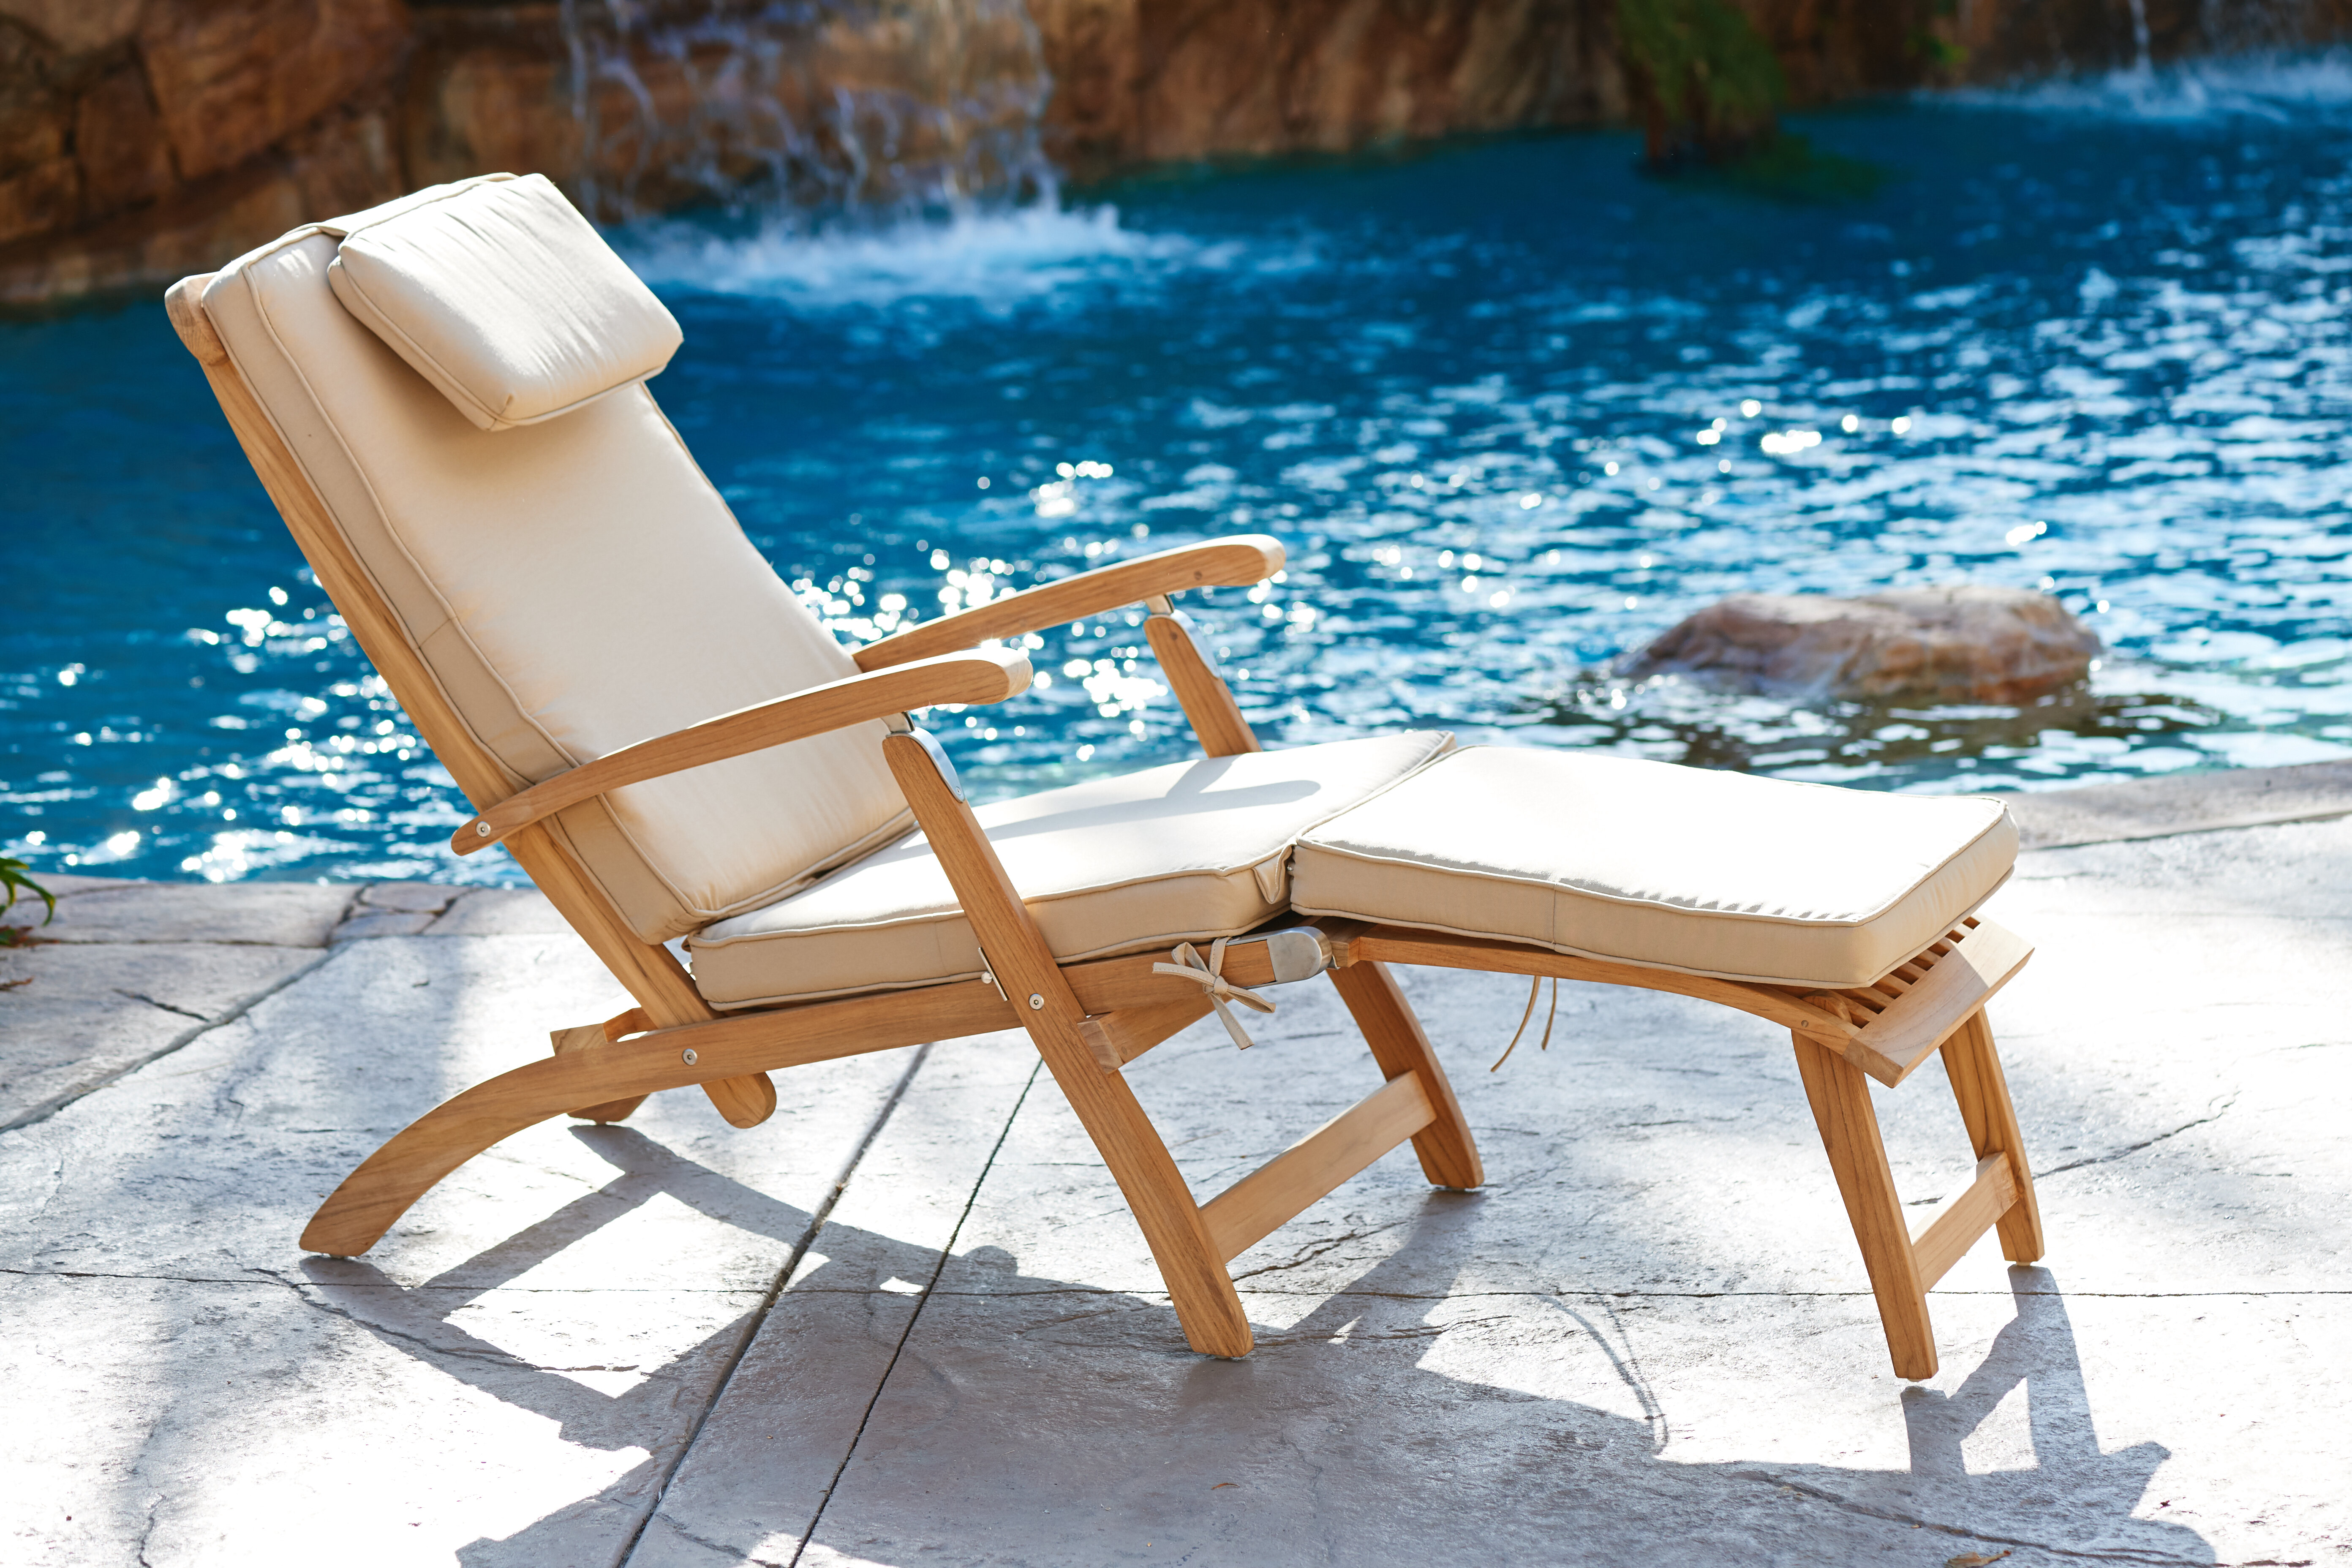 Peachy Cripe Reclining Teak Chaise Lounge With Cushion Onthecornerstone Fun Painted Chair Ideas Images Onthecornerstoneorg